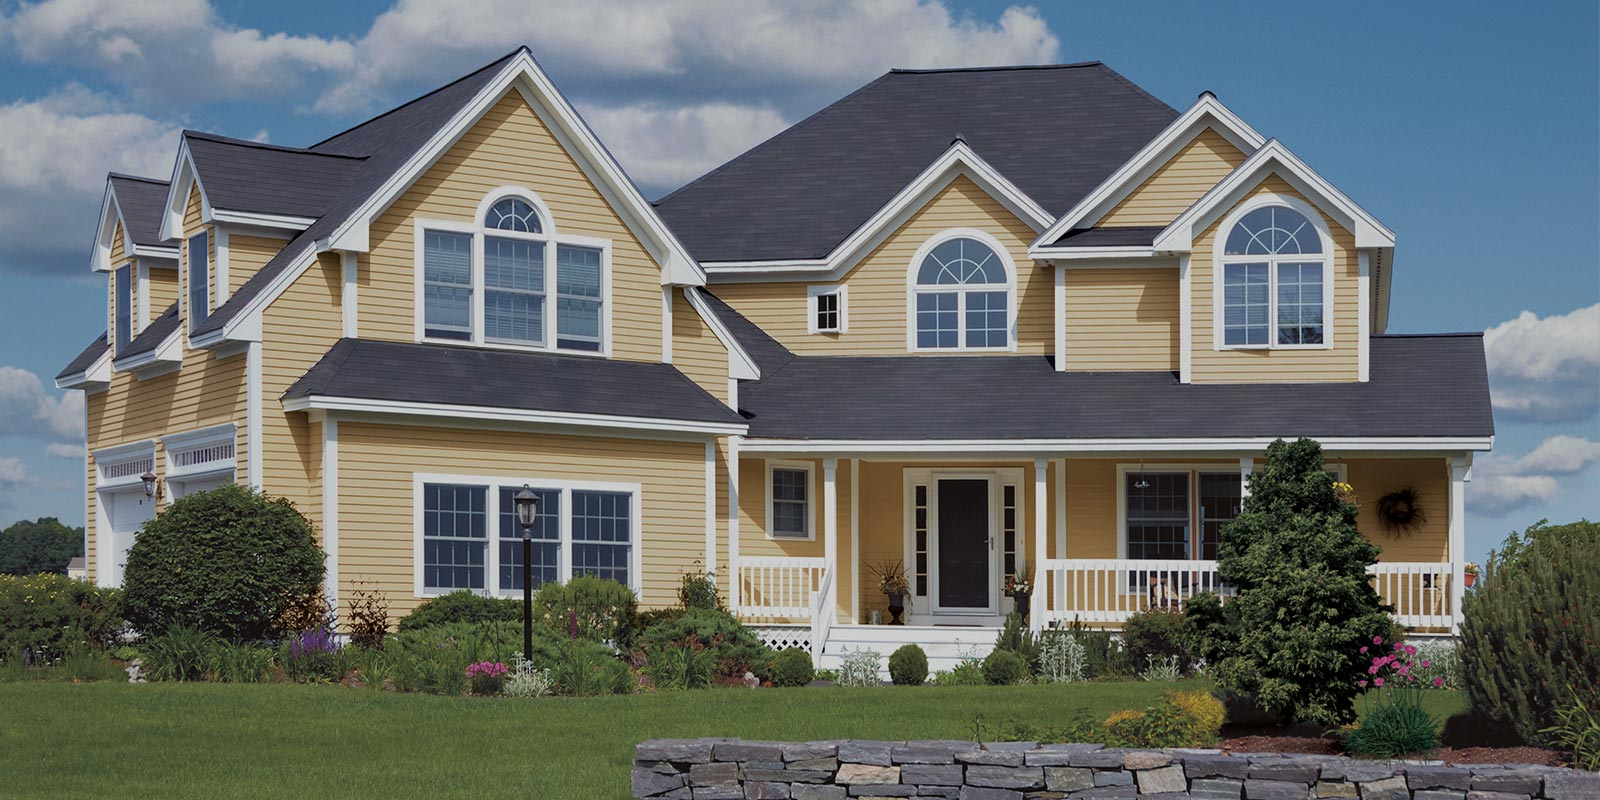 home-page-slider-KJN-residential-project-1600x800